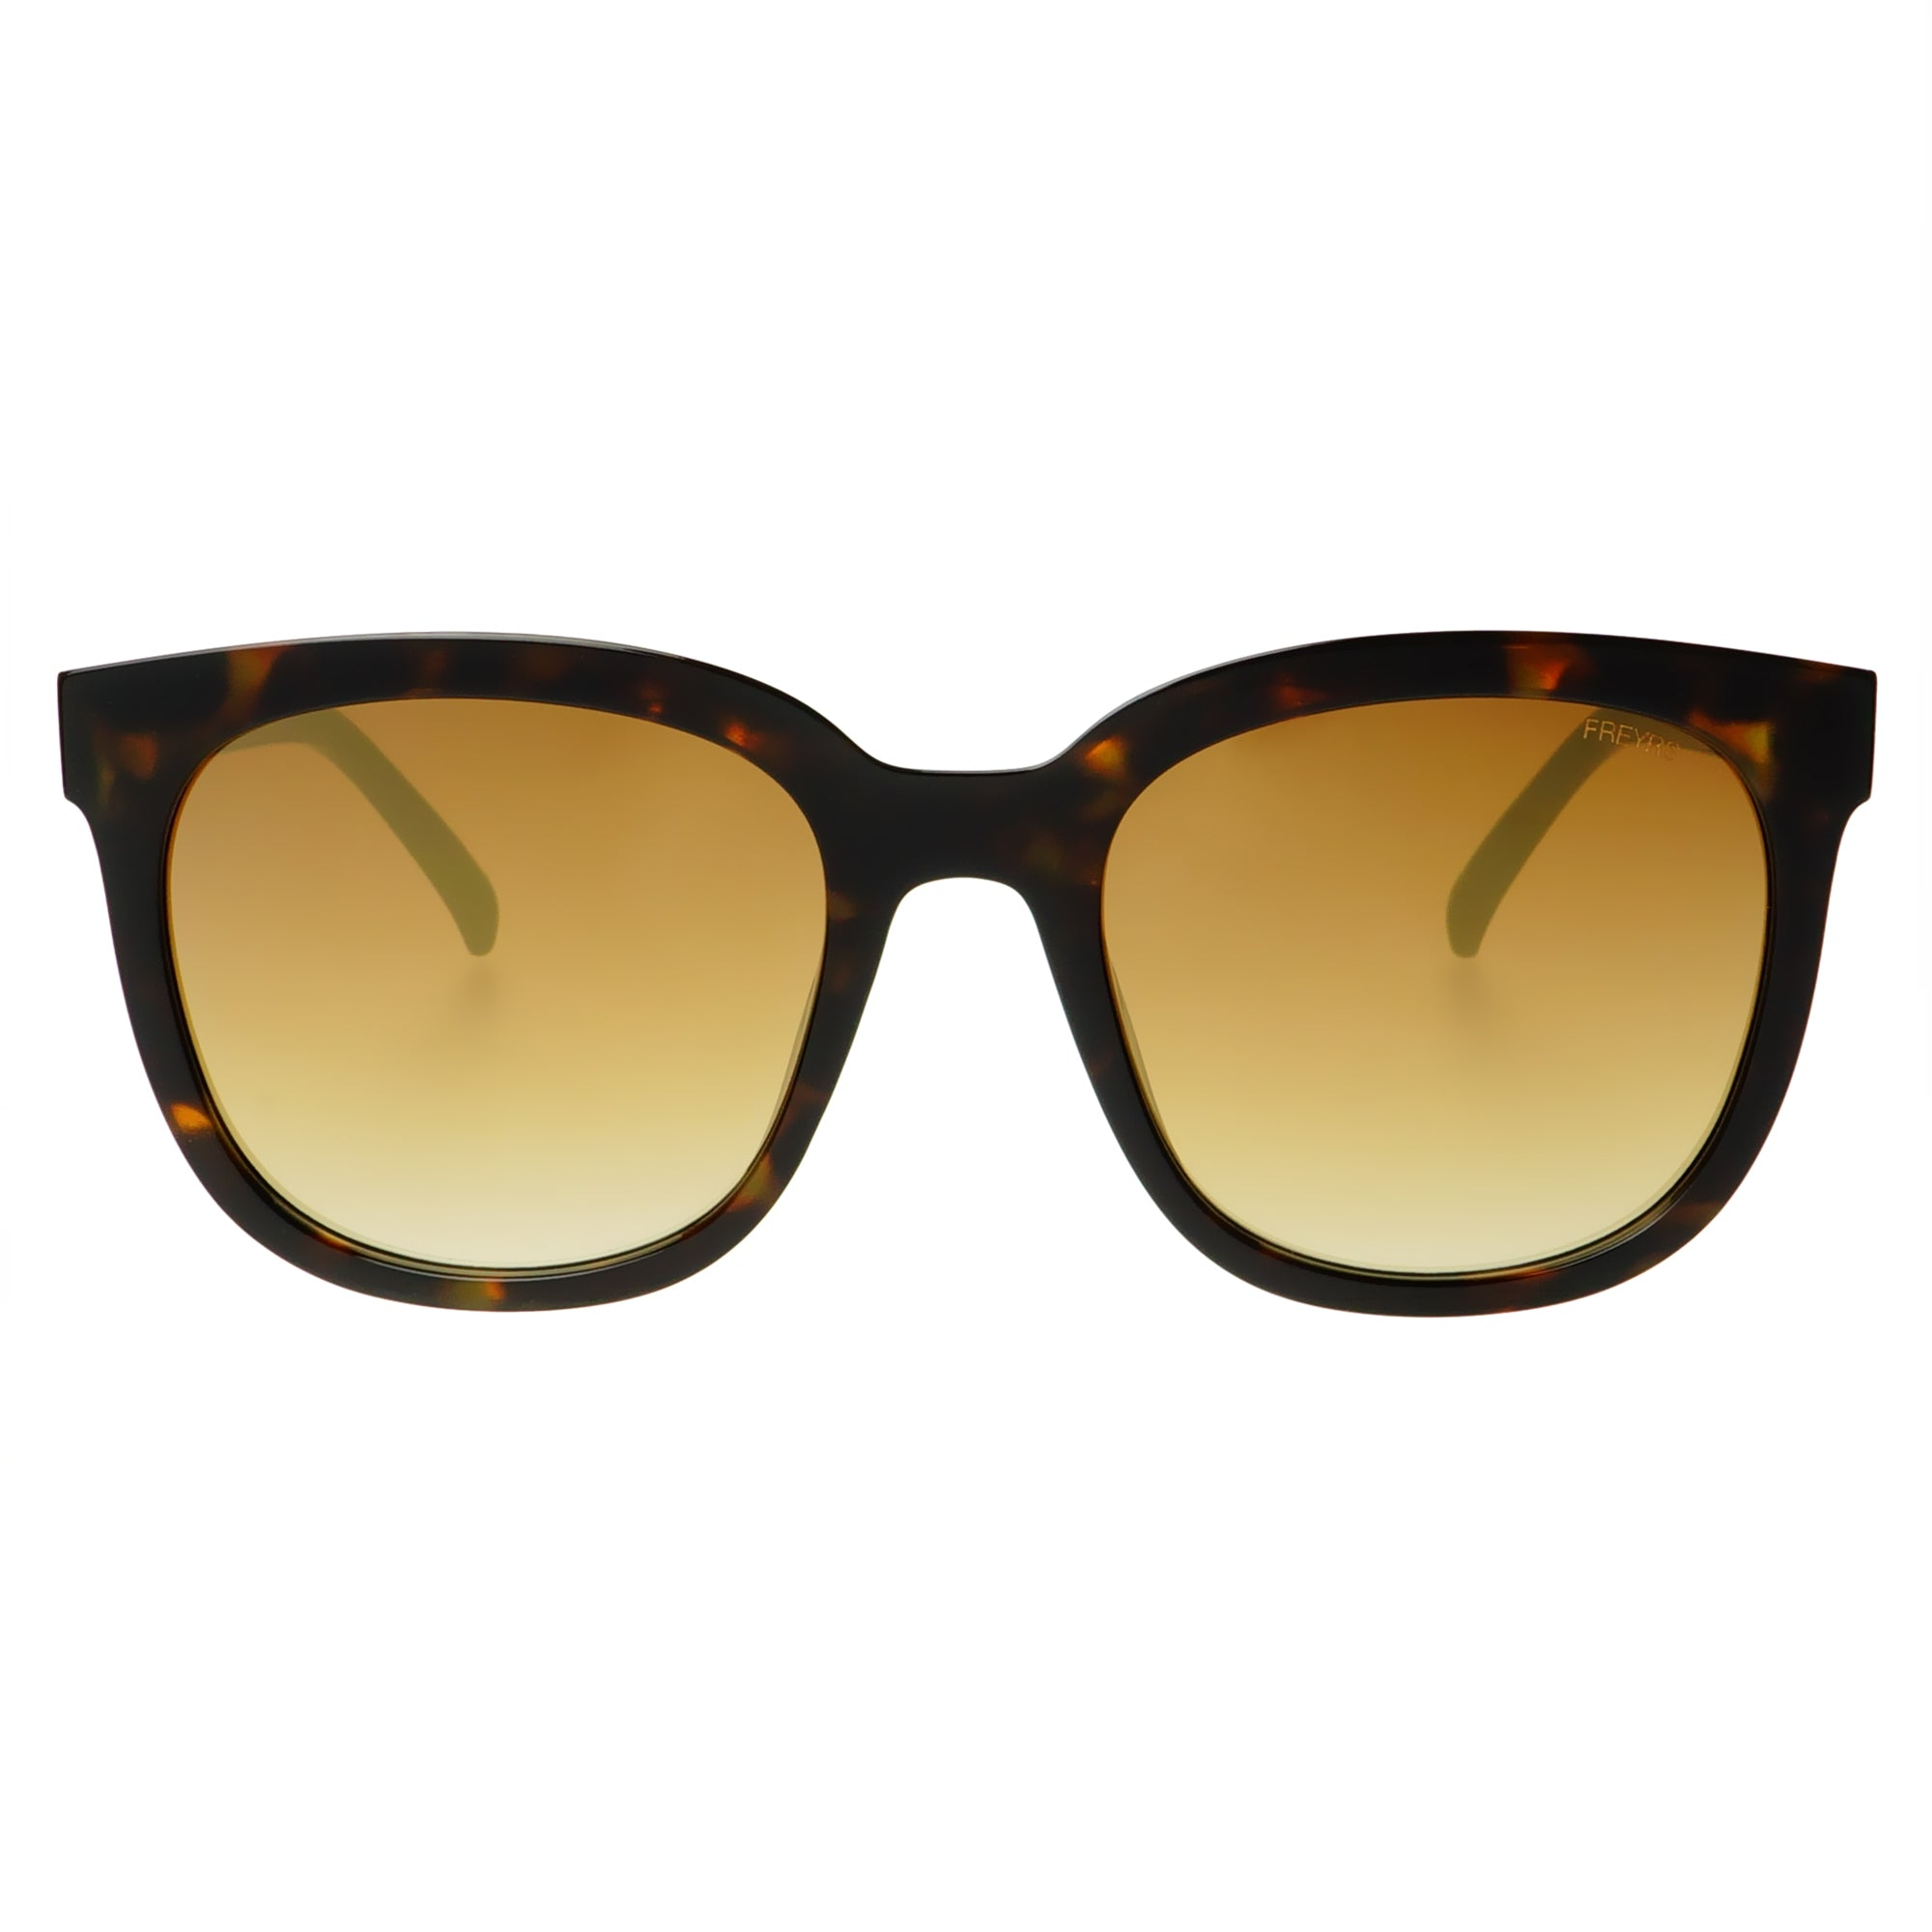 Freyrs Taylor Sunglasses Accessories - Sunglasses - Sophie